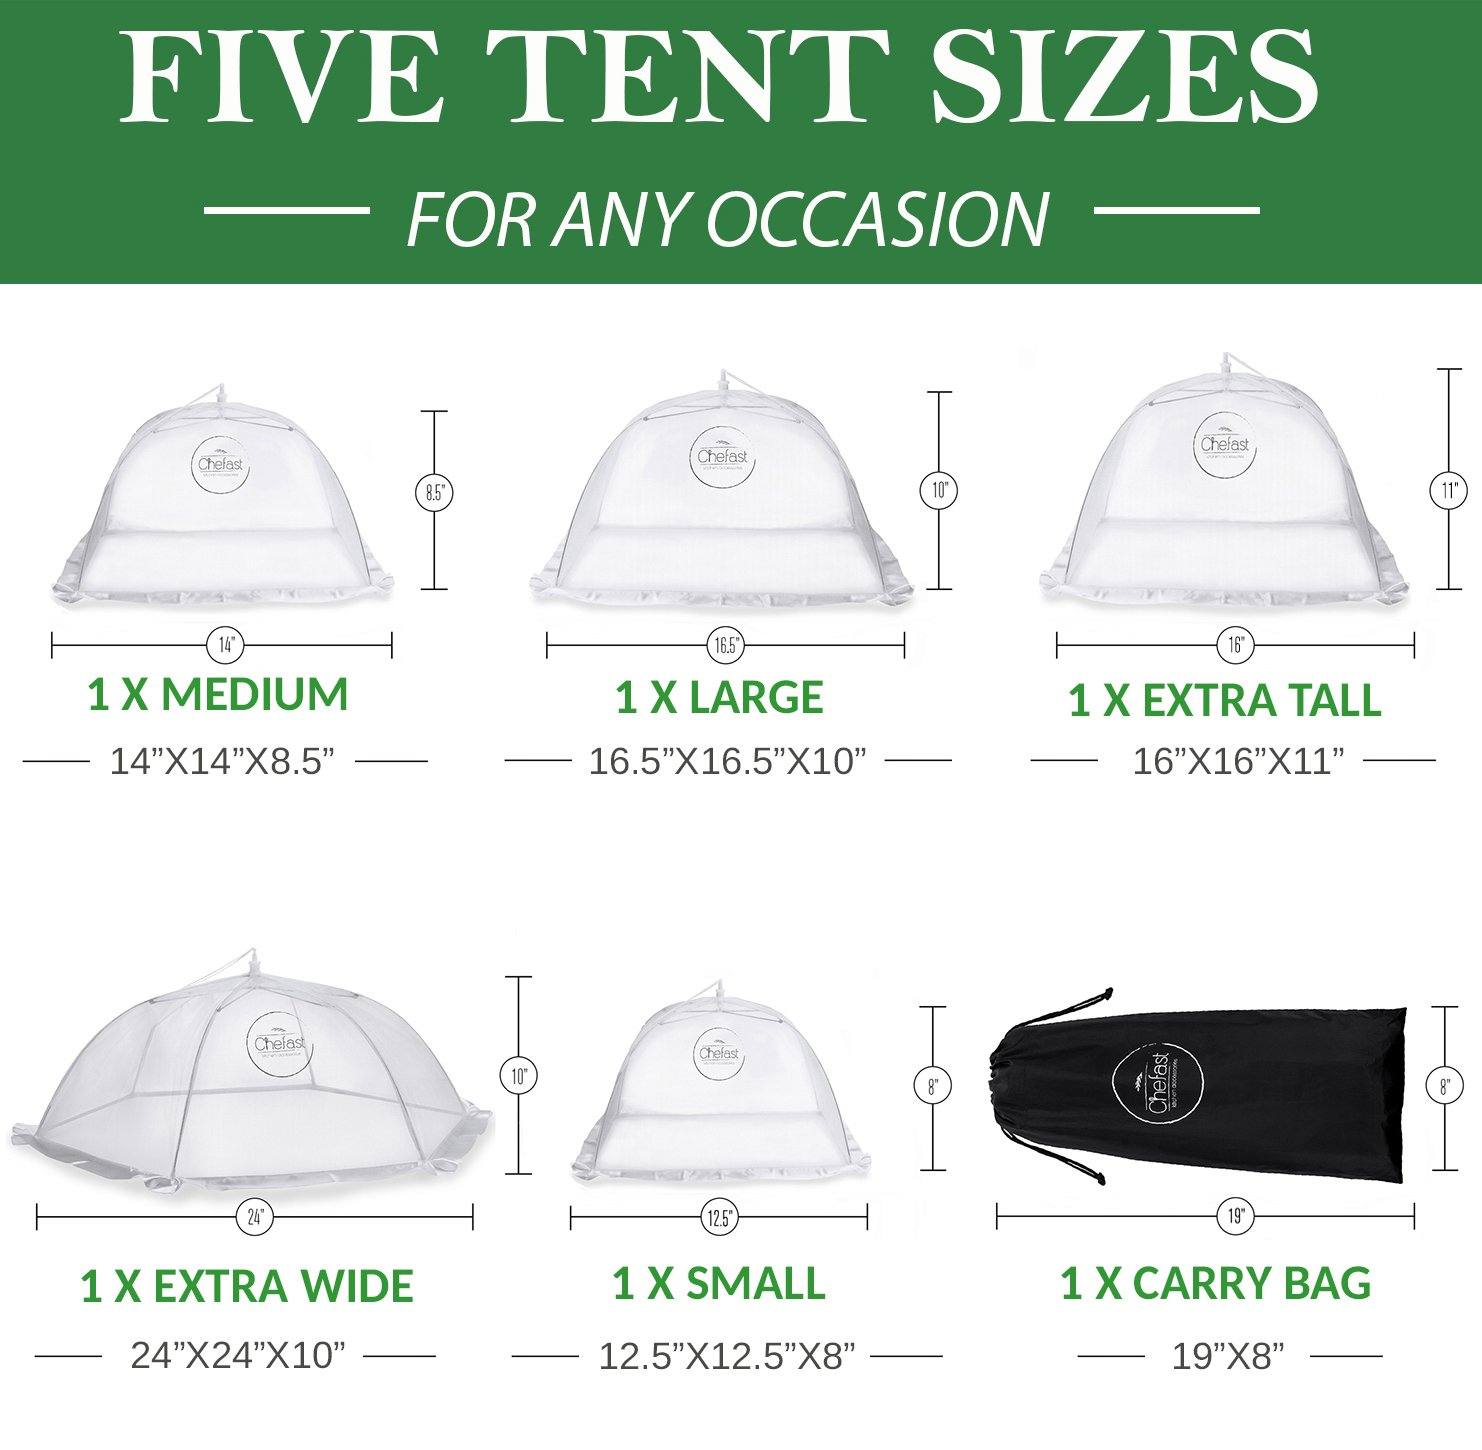 Amazon.com | Chefast Food Cover Tents (5 Pack) - Combo Set of Pop Up Mesh Covers in 5 Sizes and a Reusable Carry Bag - Umbrella Screens to Protect Your Food ...  sc 1 st  Amazon.com & Amazon.com | Chefast Food Cover Tents (5 Pack) - Combo Set of Pop Up ...